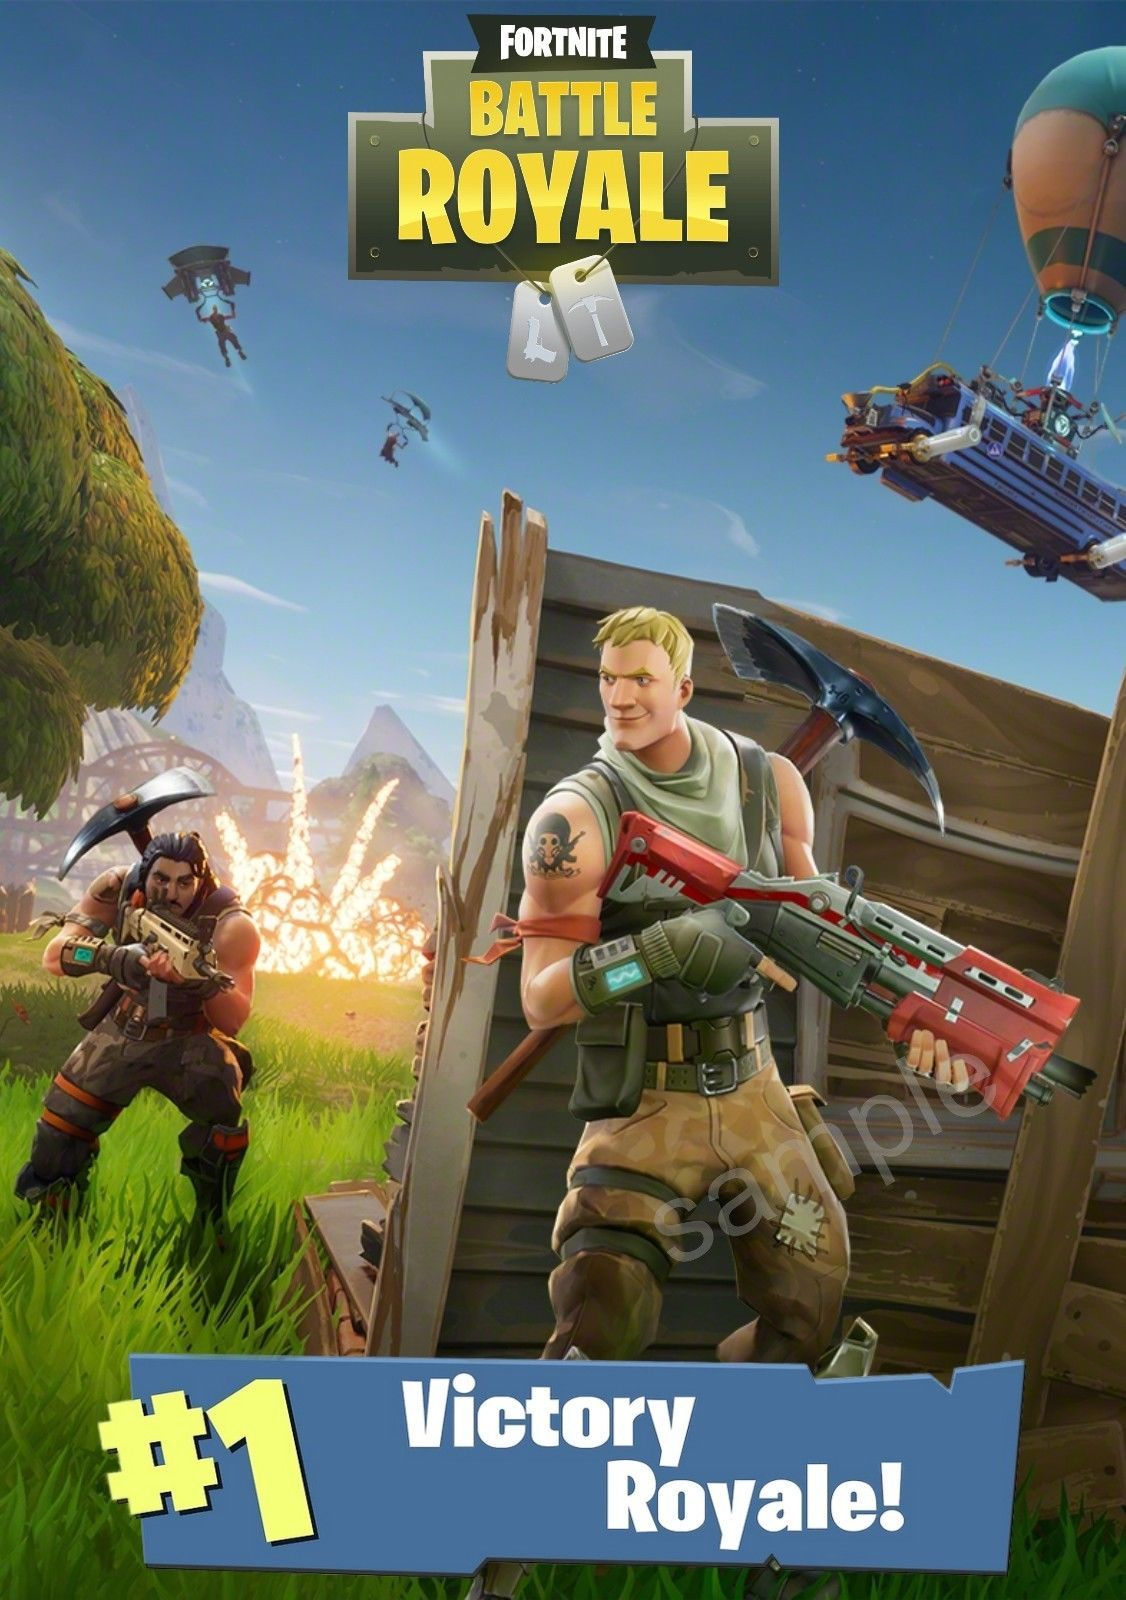 Fortnite Battle Royale Poster Size A3 Free Postage Hunter S Gaming